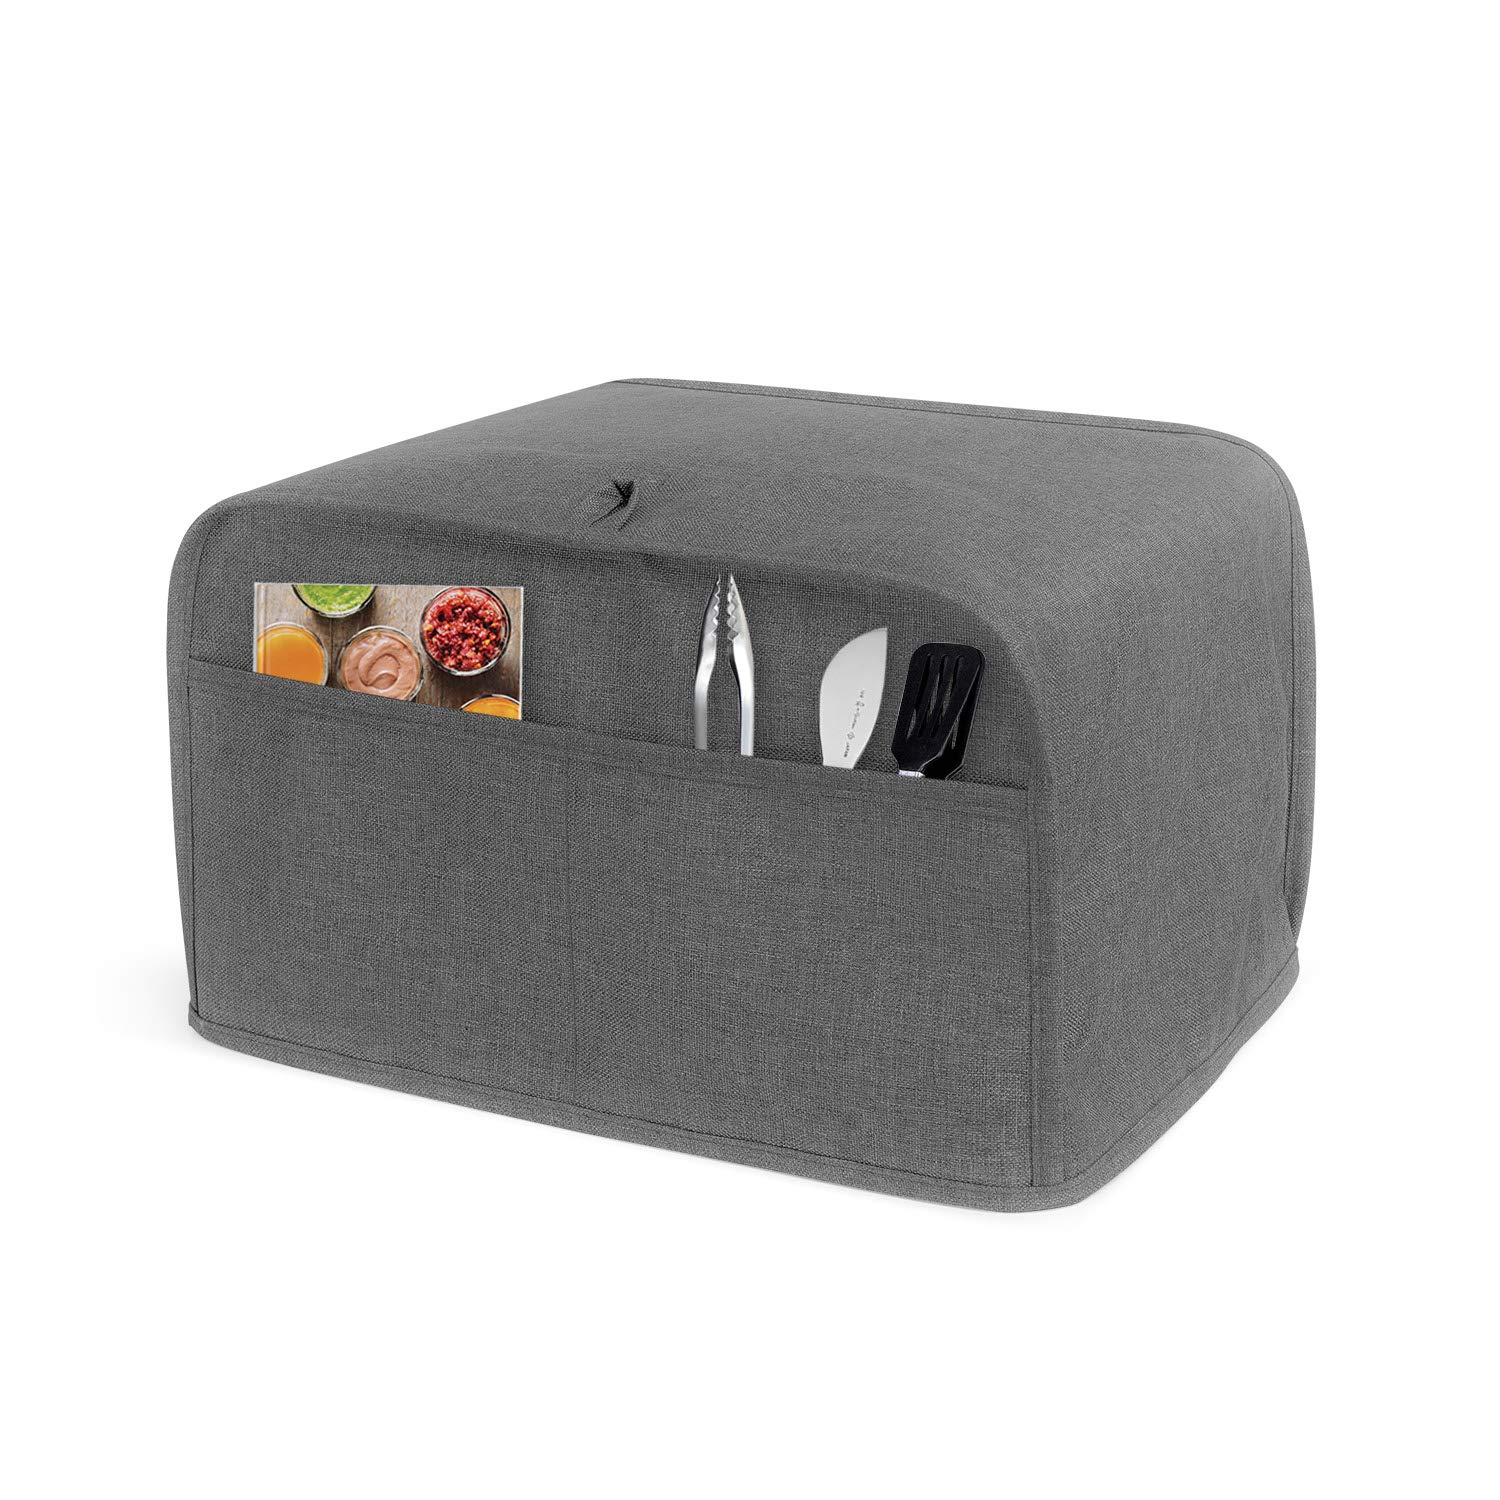 Luxja 2 Slice Toaster Cover (11 x 7.5 x 8 inches), Toaster Cover with 2 Pockets (Fits for Most Major 2 Slice Toasters), Gray